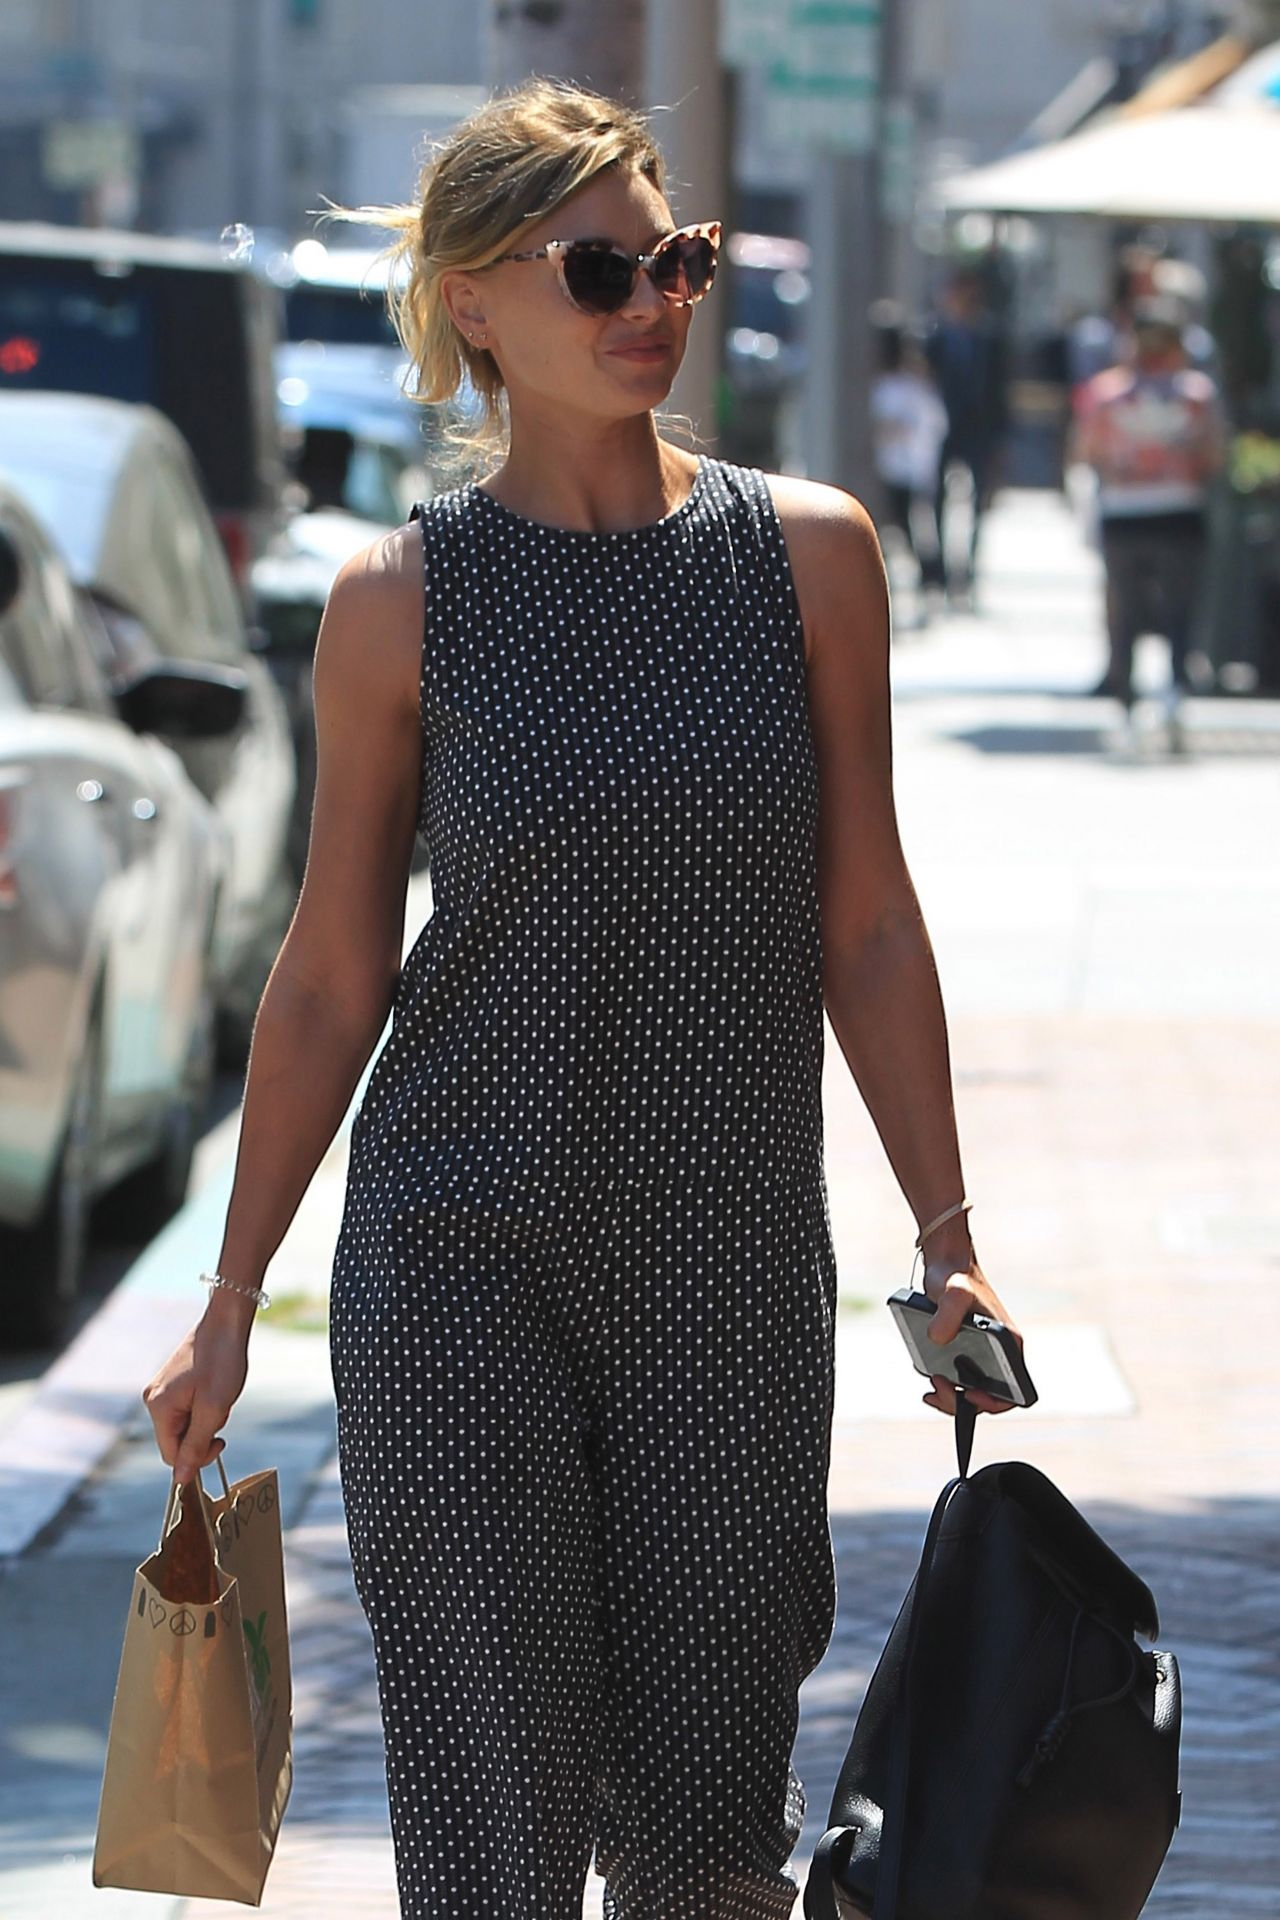 Alyson Aly Michalka - Shopping in Beverly Hills 4/4/2017 ...